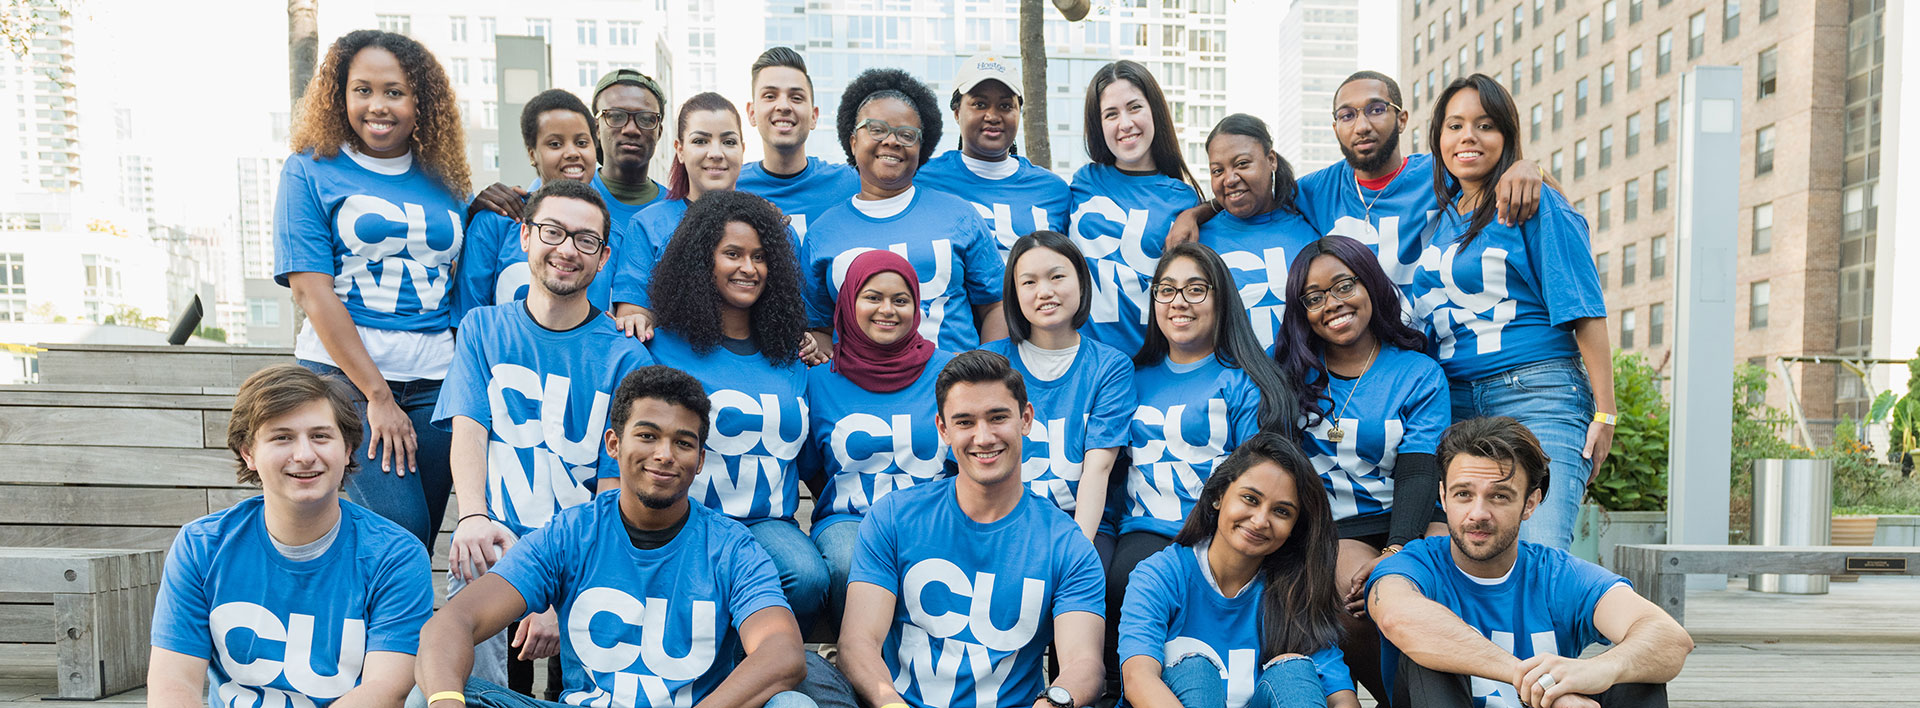 CUNY students using t-shirts to promote Giving Tuesday